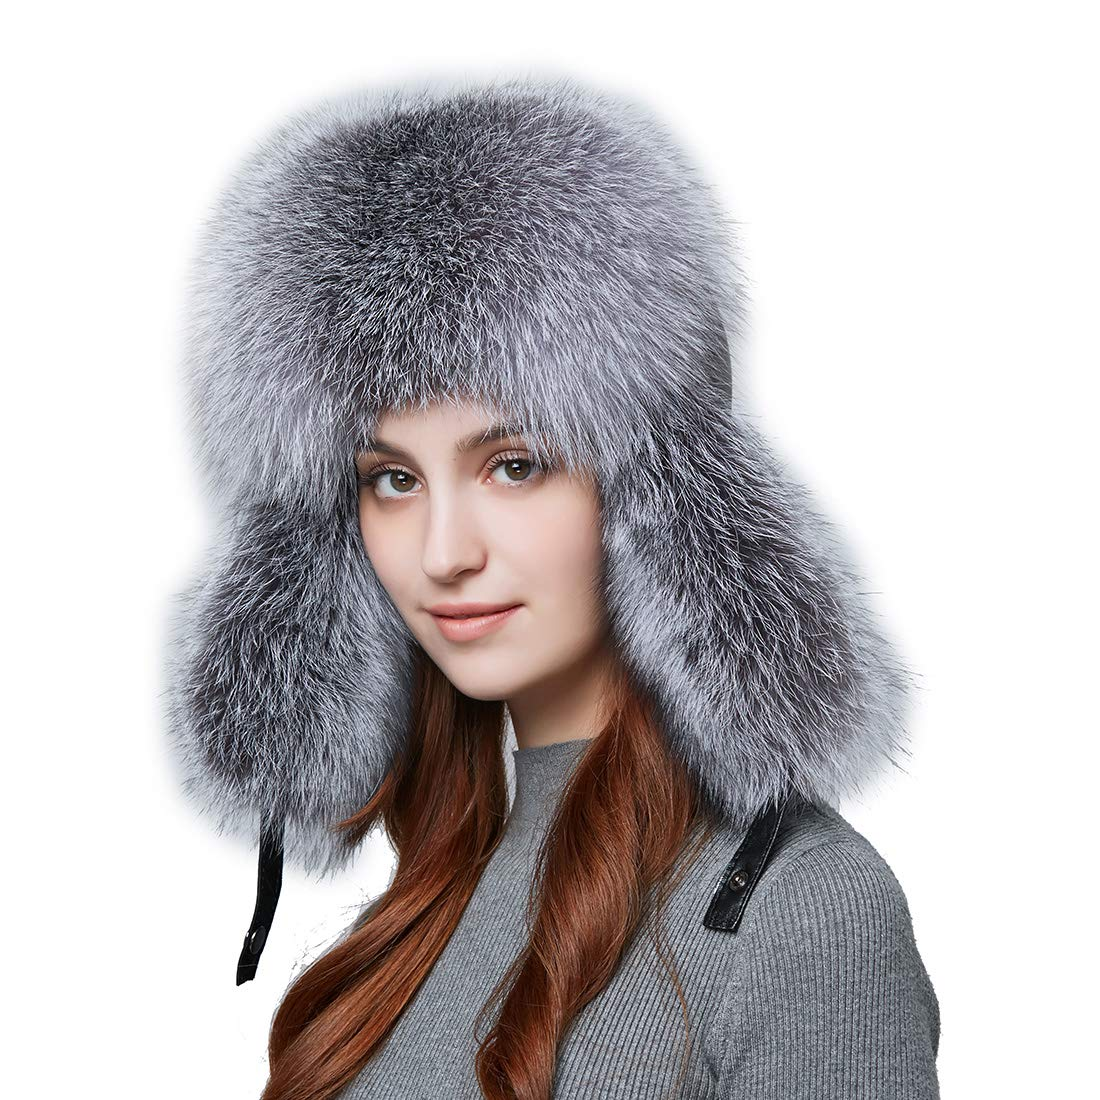 BeFur Fashion Women Winter Warm Fox Fur Lamb Leather Caps Bomber Hat Russian Protection Patchwork Causal Hat Caps